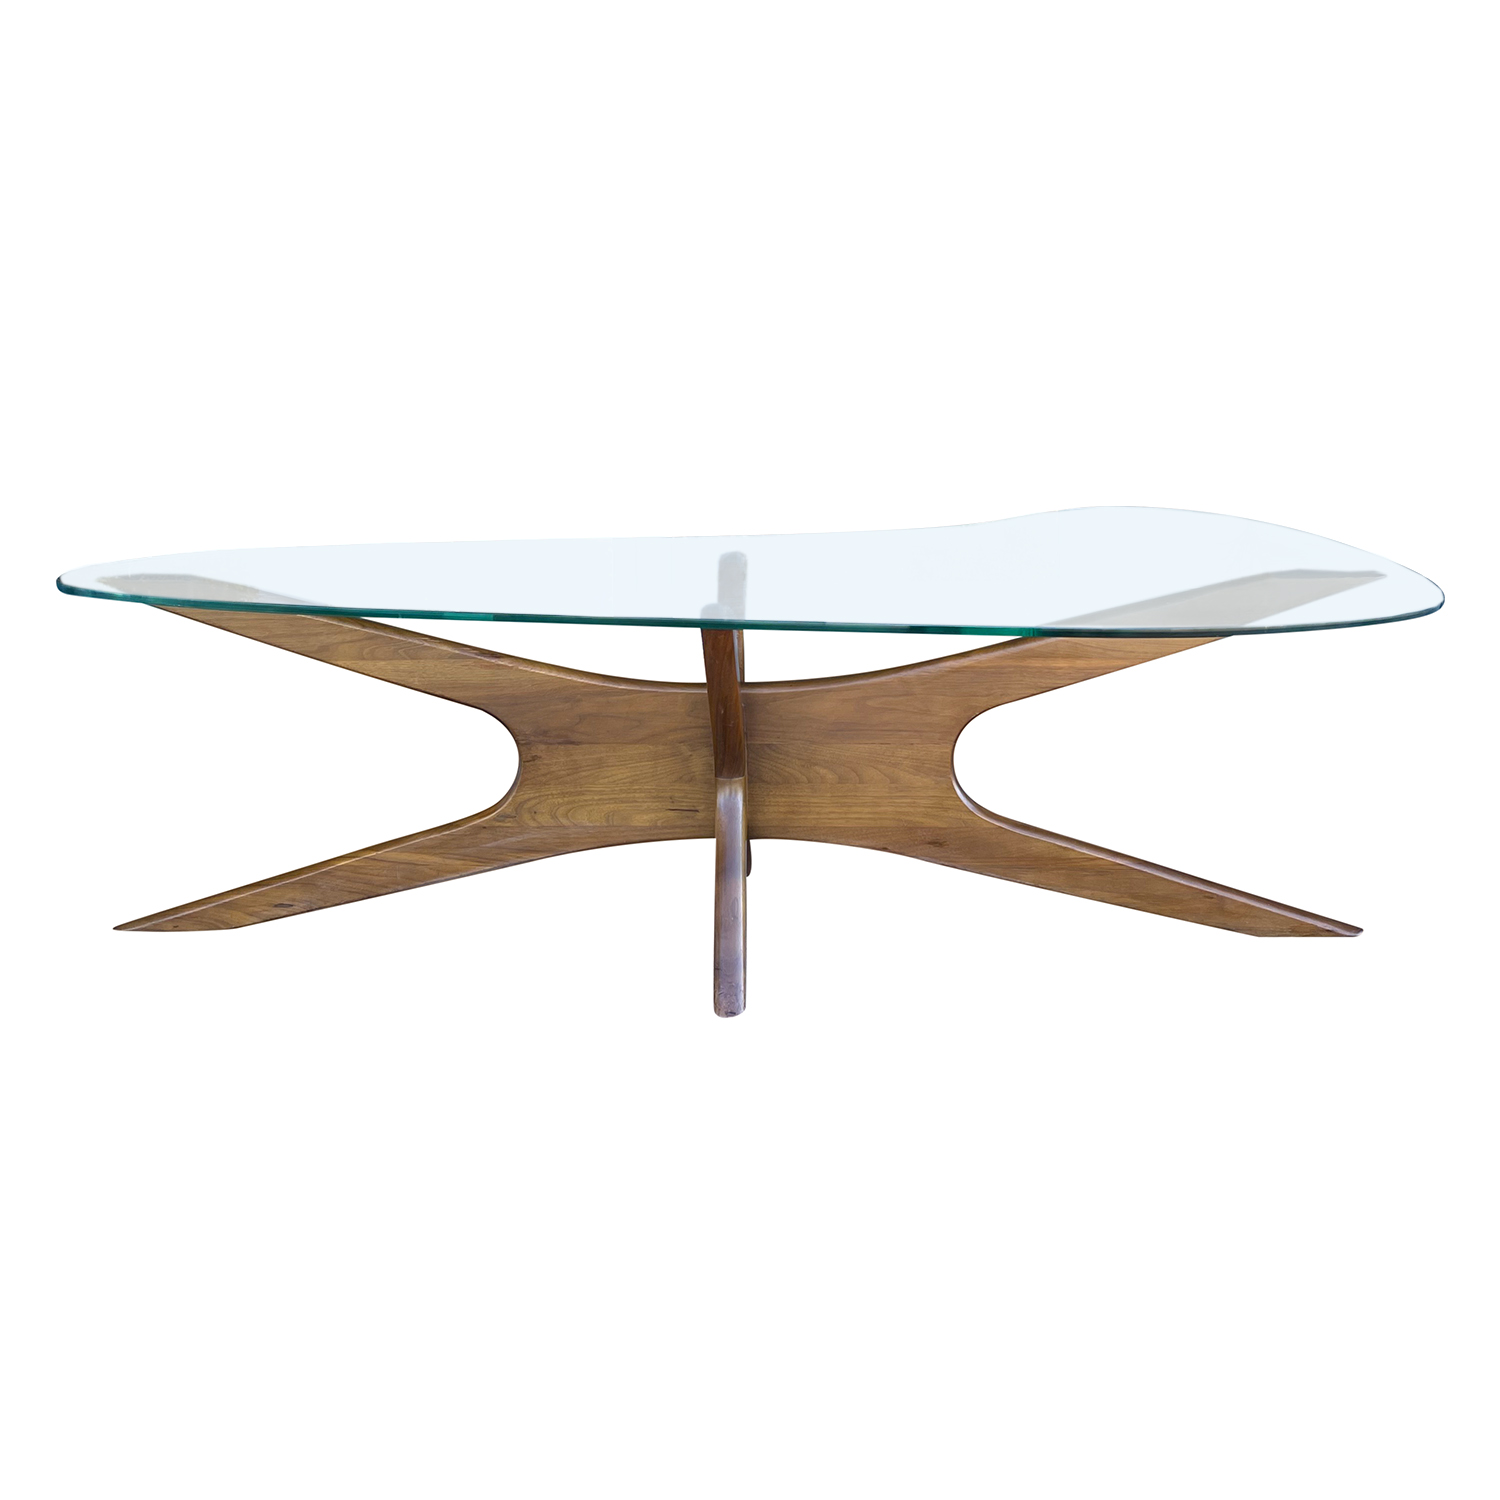 20th Century American Craft Associates Walnut Glass Coffee Table by Adrian Pearsall